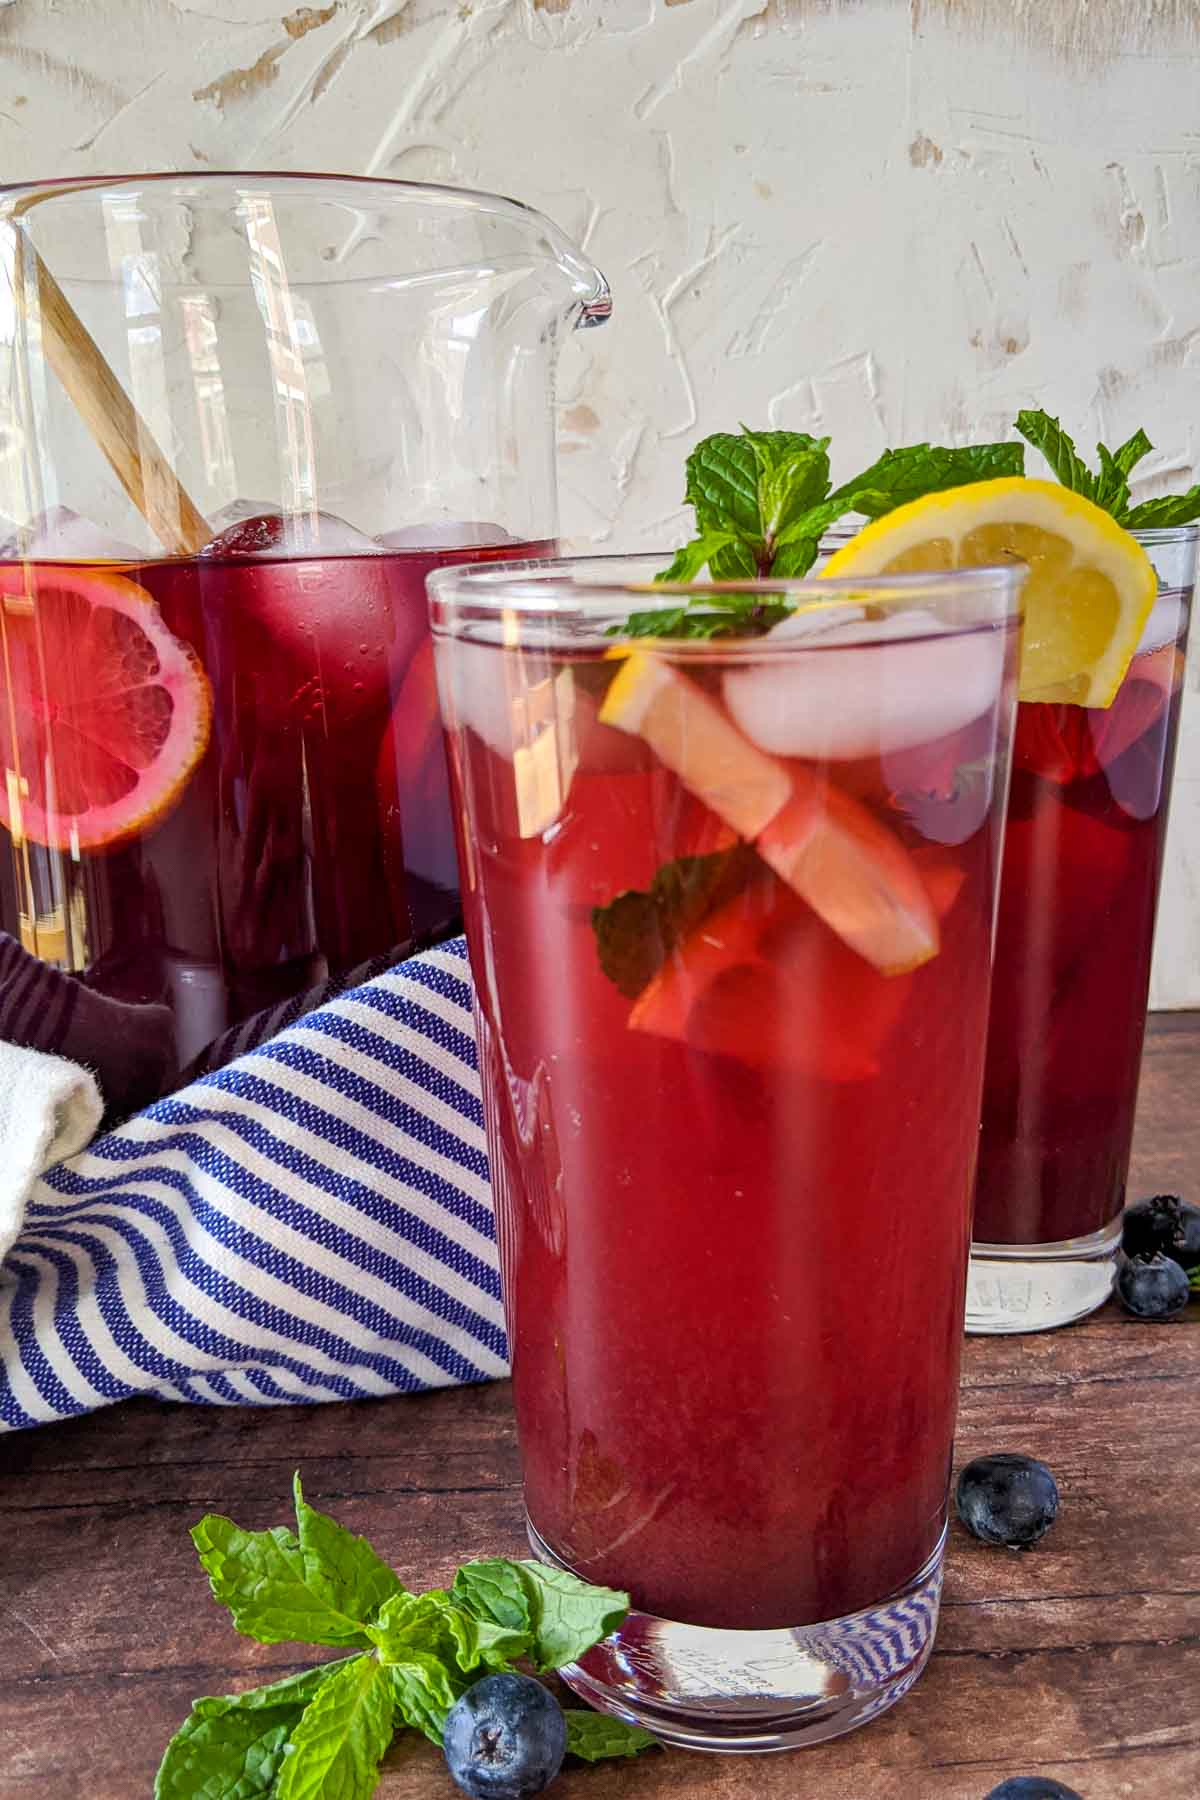 blueberry tea in glass with pitcher behind